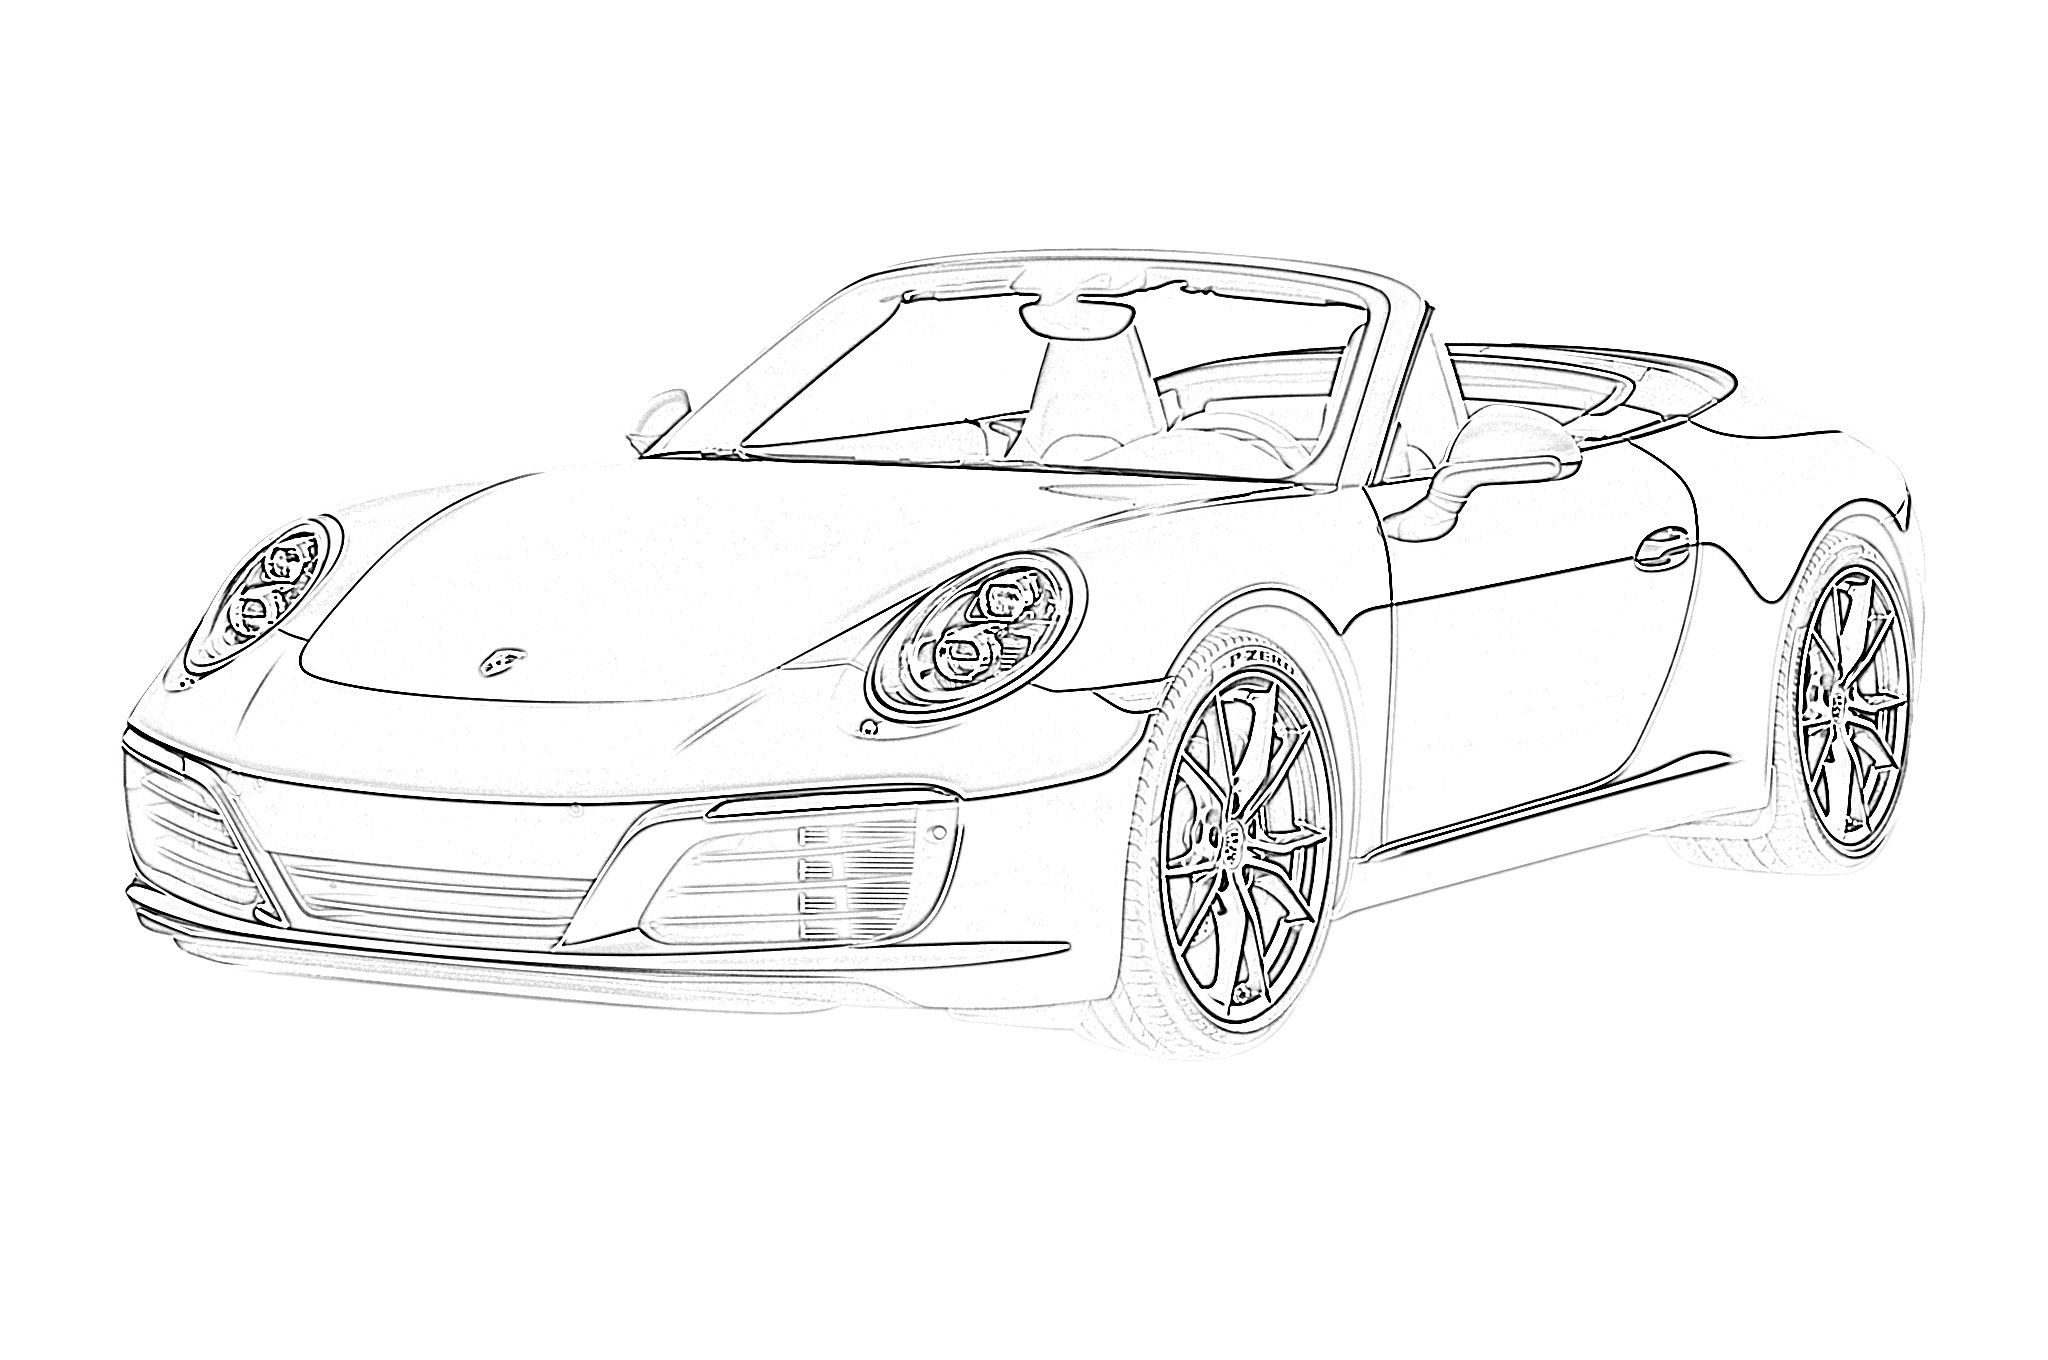 pictures to colour in of cars free printable cars coloring pages for kids cool2bkids of in cars pictures to colour